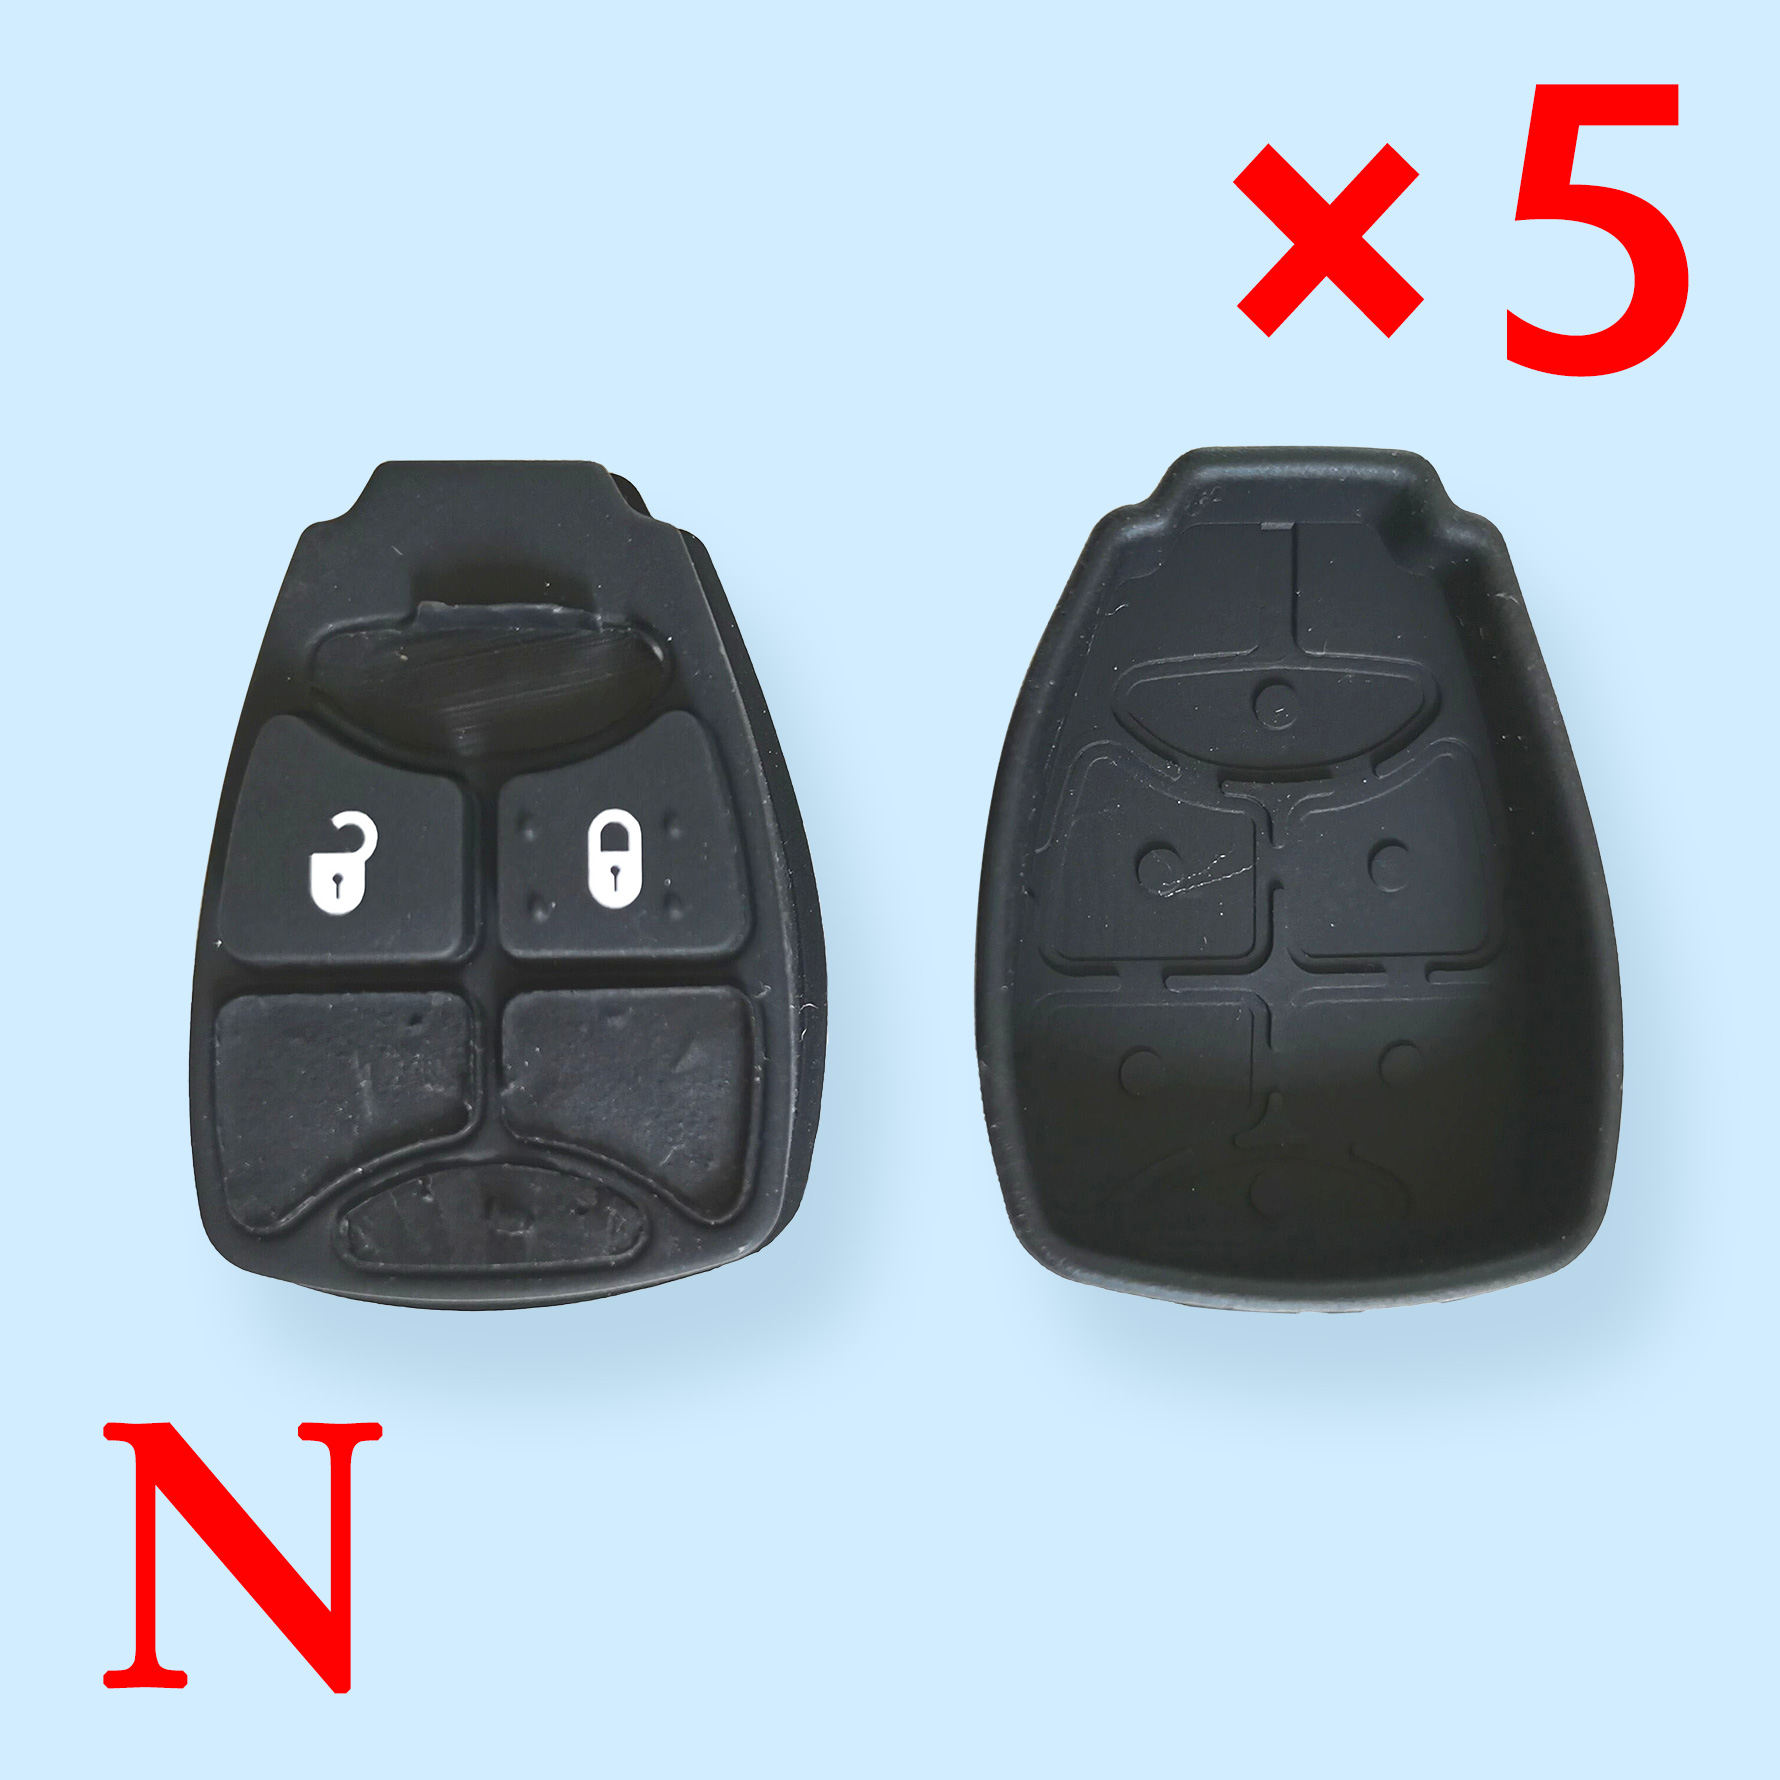 2 Buttons Rubber Pad for Chrysler Jeep Dodge - Pack of 5